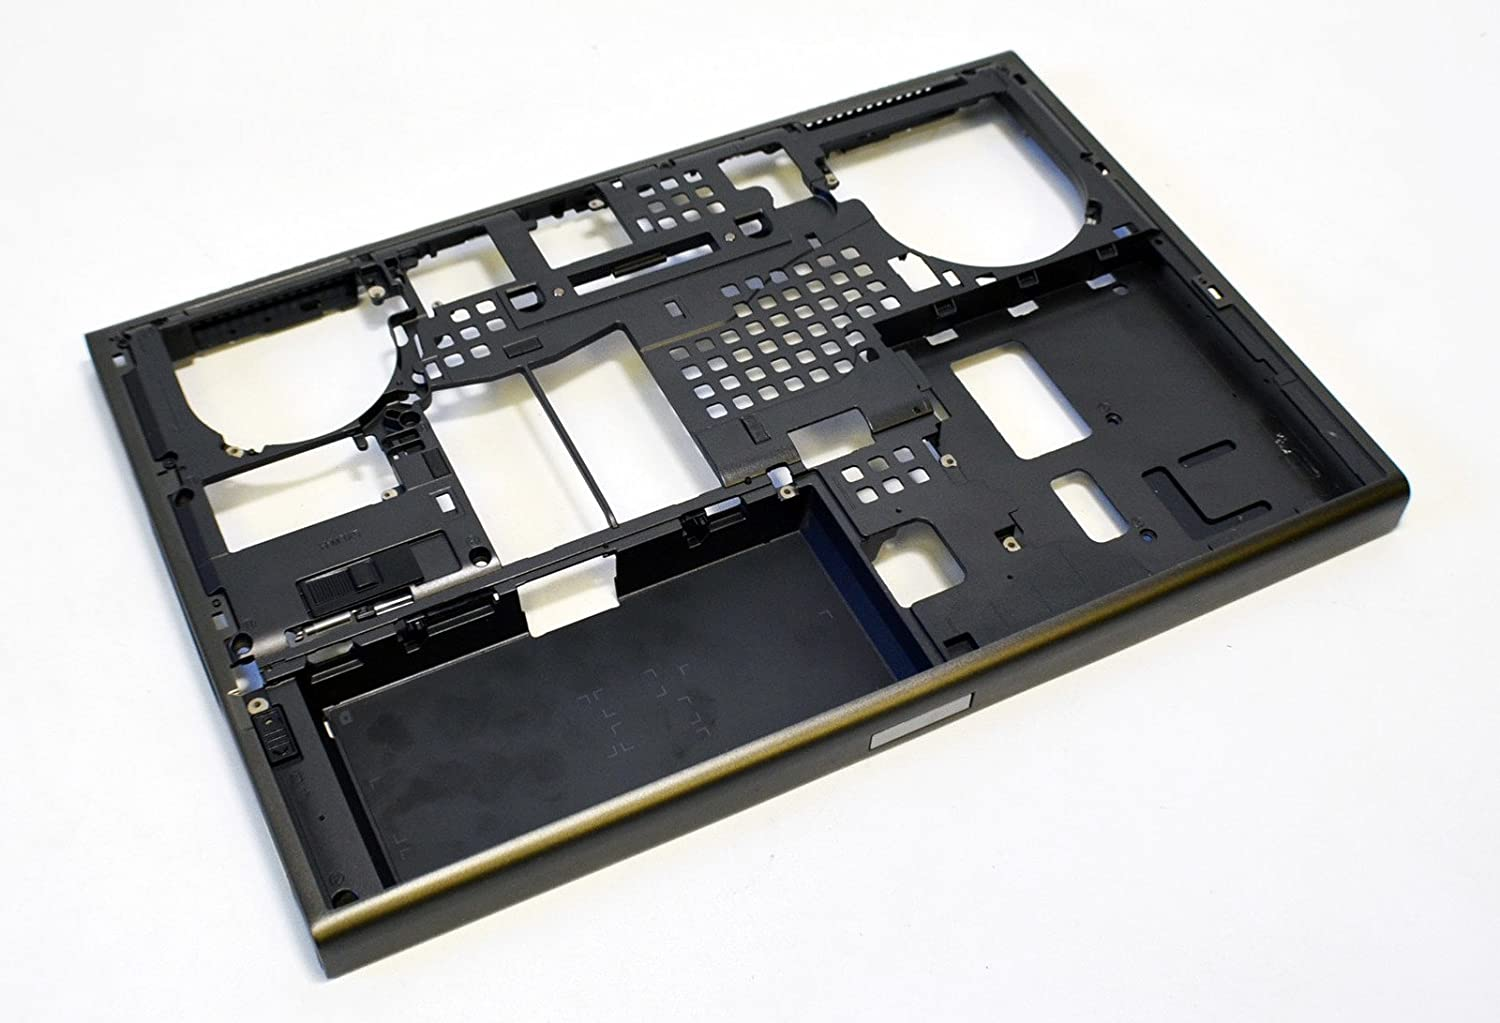 TVPD6 New Genuine OEM DELL Precision M4800 Laptop Lower Bottom Base Case Chassis Assembly Cover Plastic Housing Frame Enclosure g81k3 TVPD6